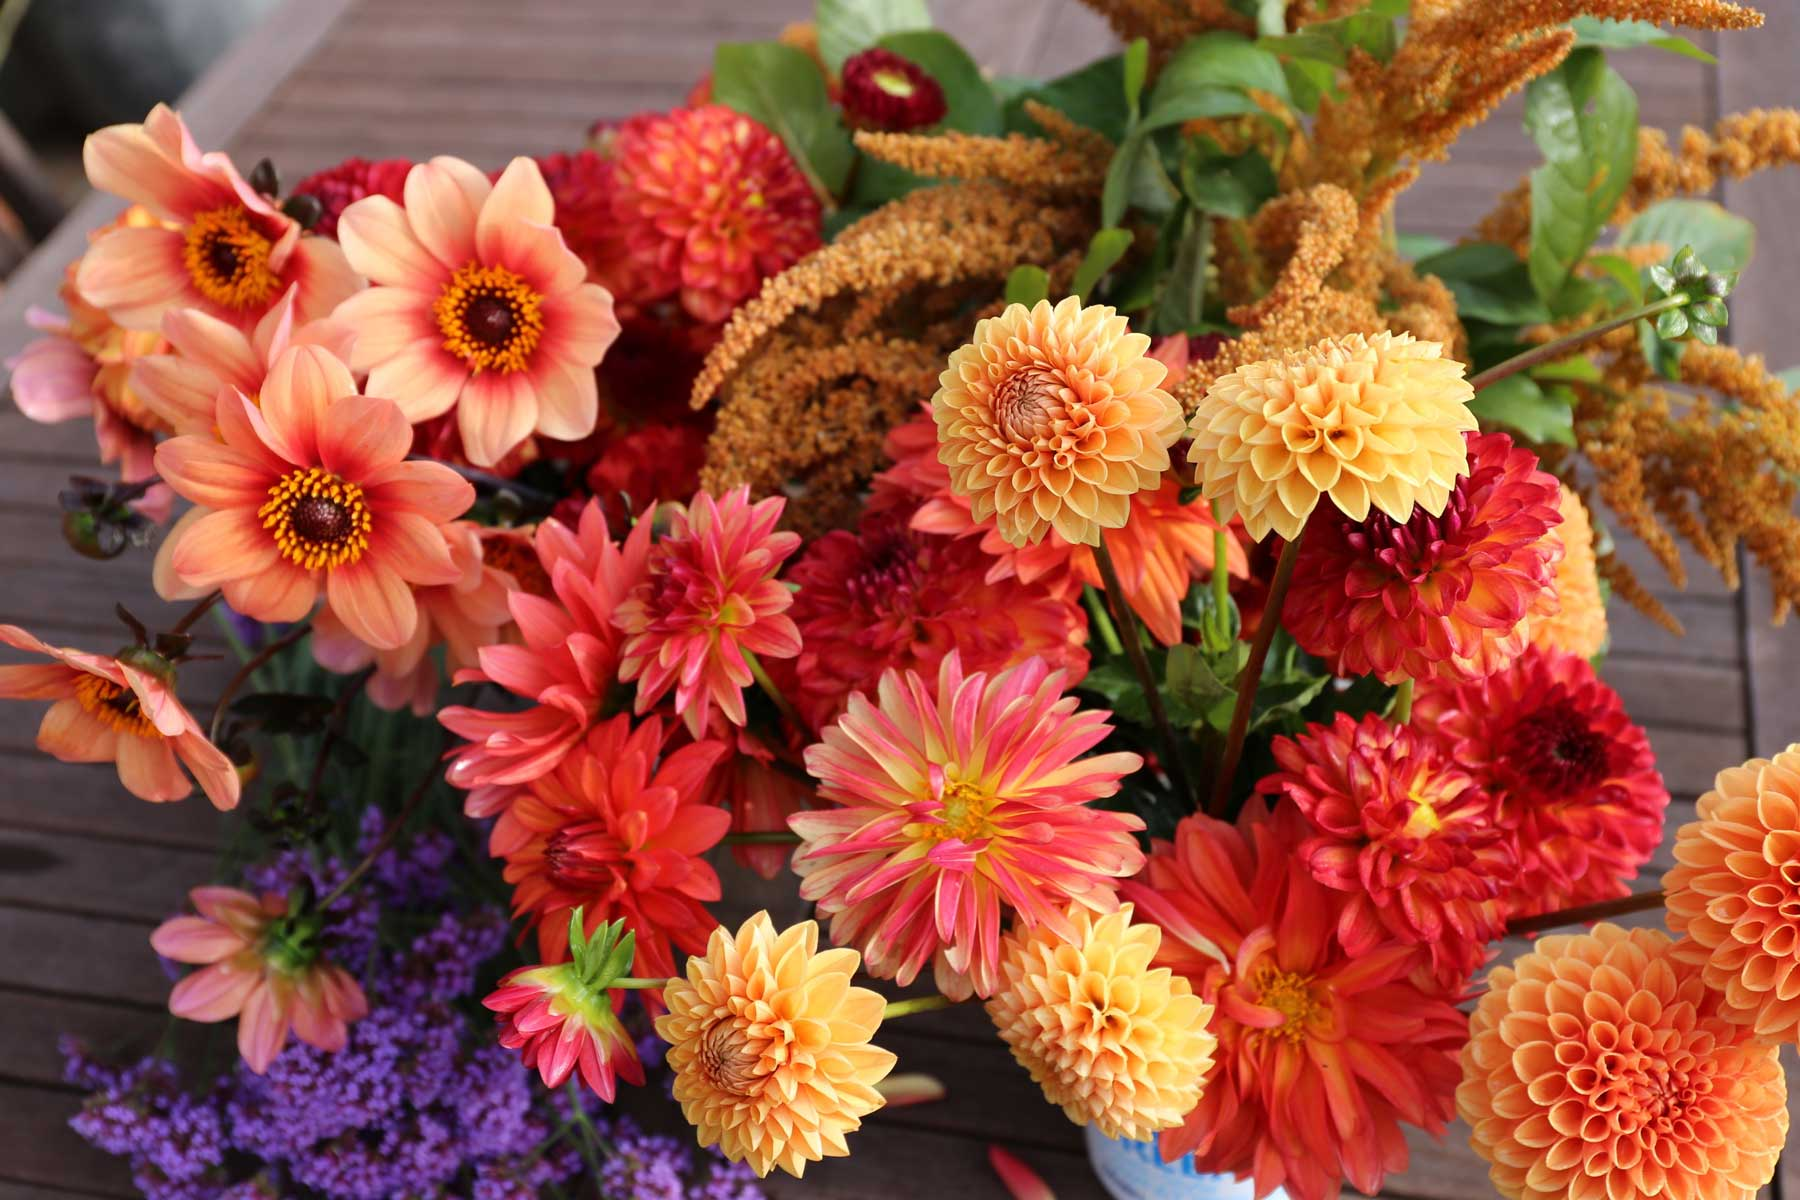 8 Tips for Growing Better Dahlias - Longfield Gardens